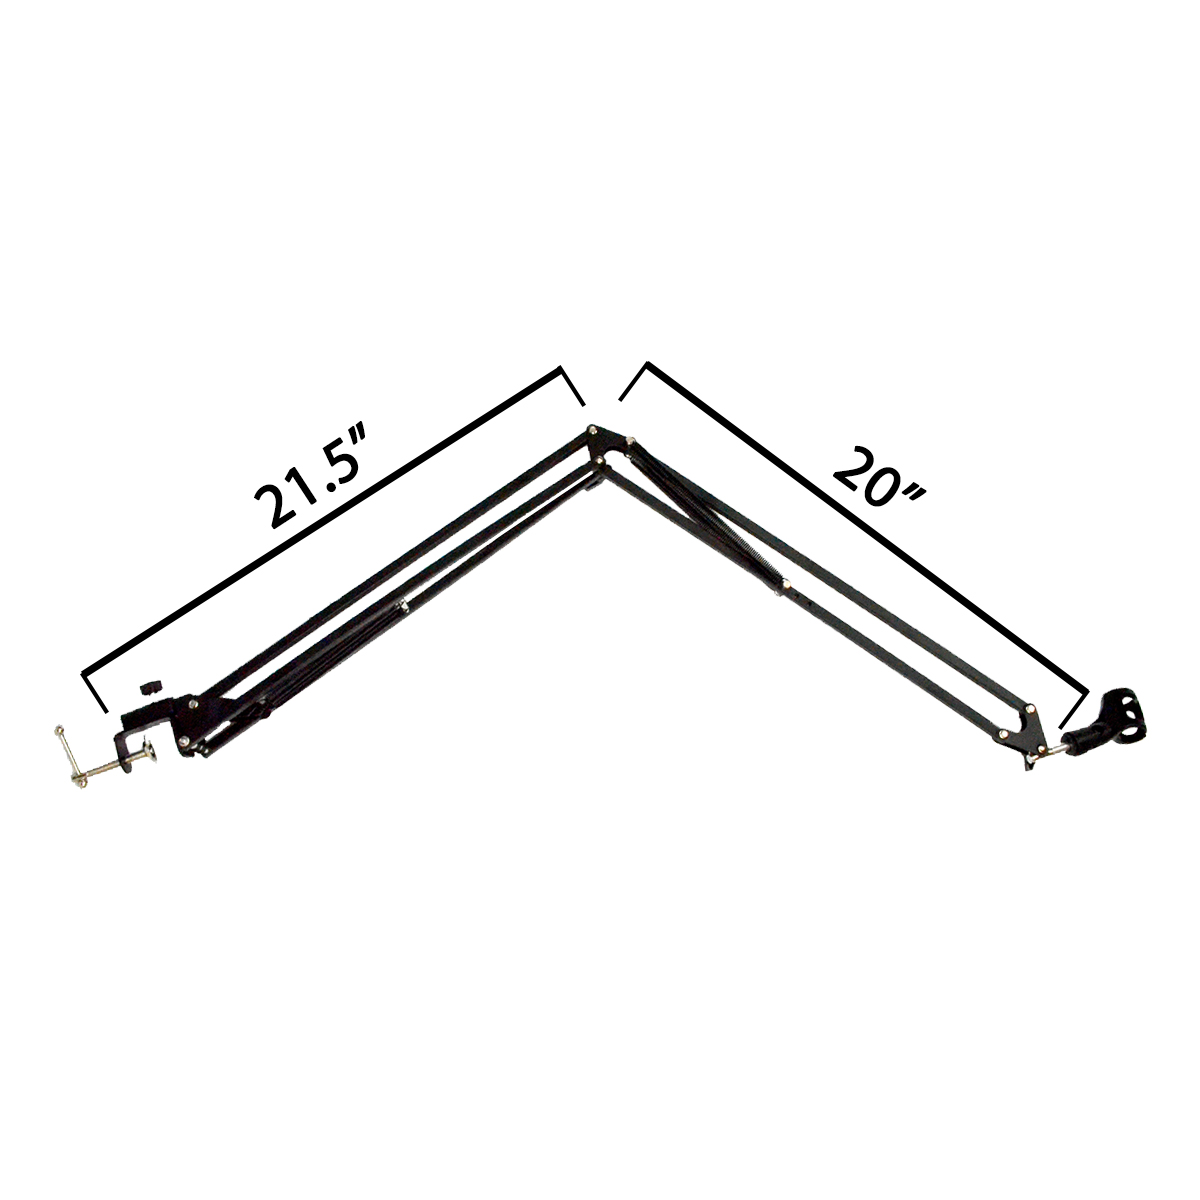 LARGE-Clip-Arm-Mic-Stand-3